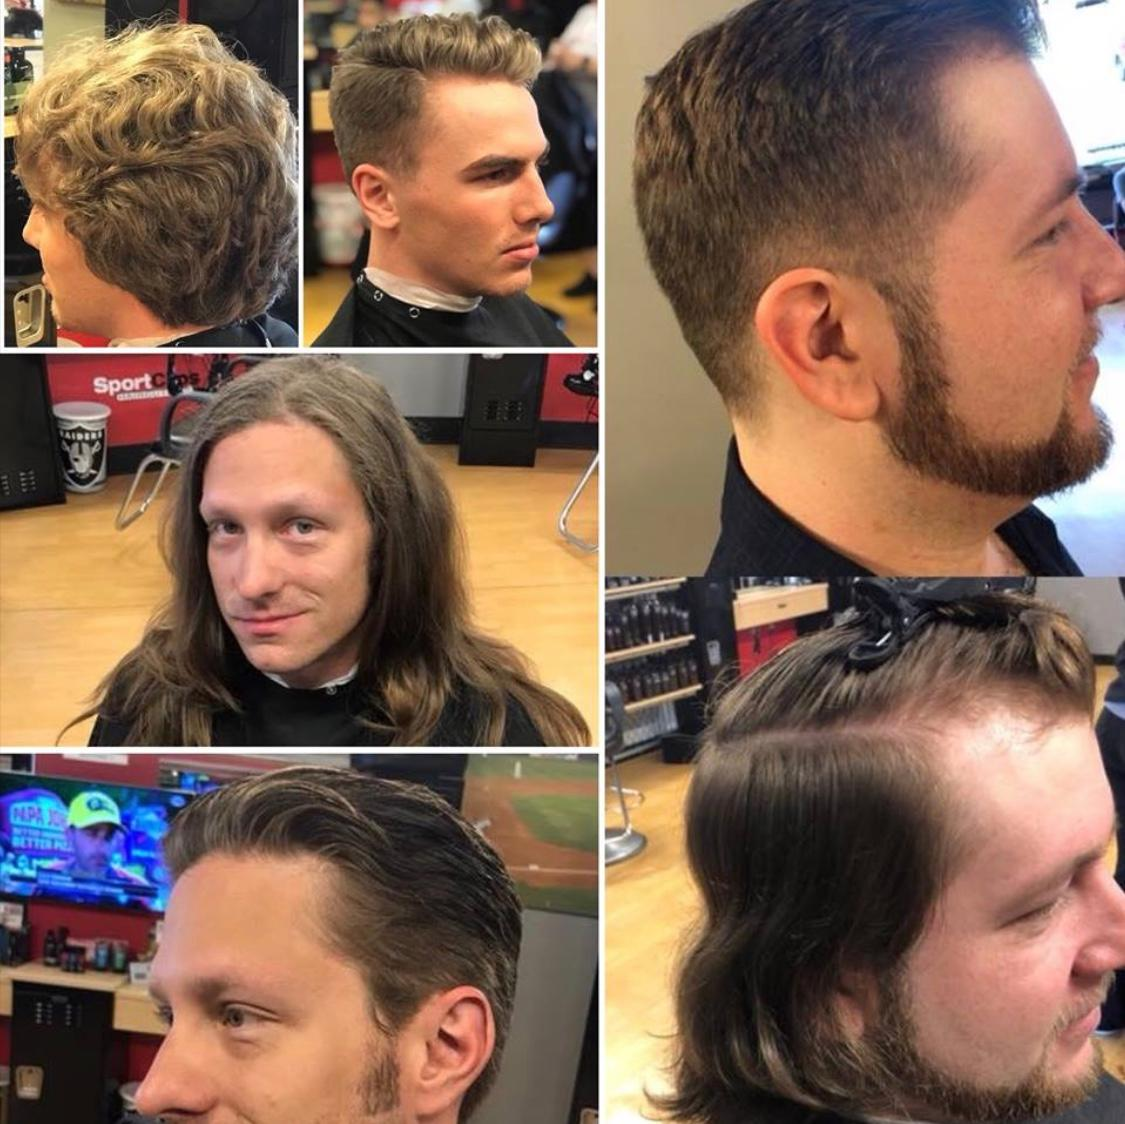 Sport Clips Haircuts of New Port Richey image 24